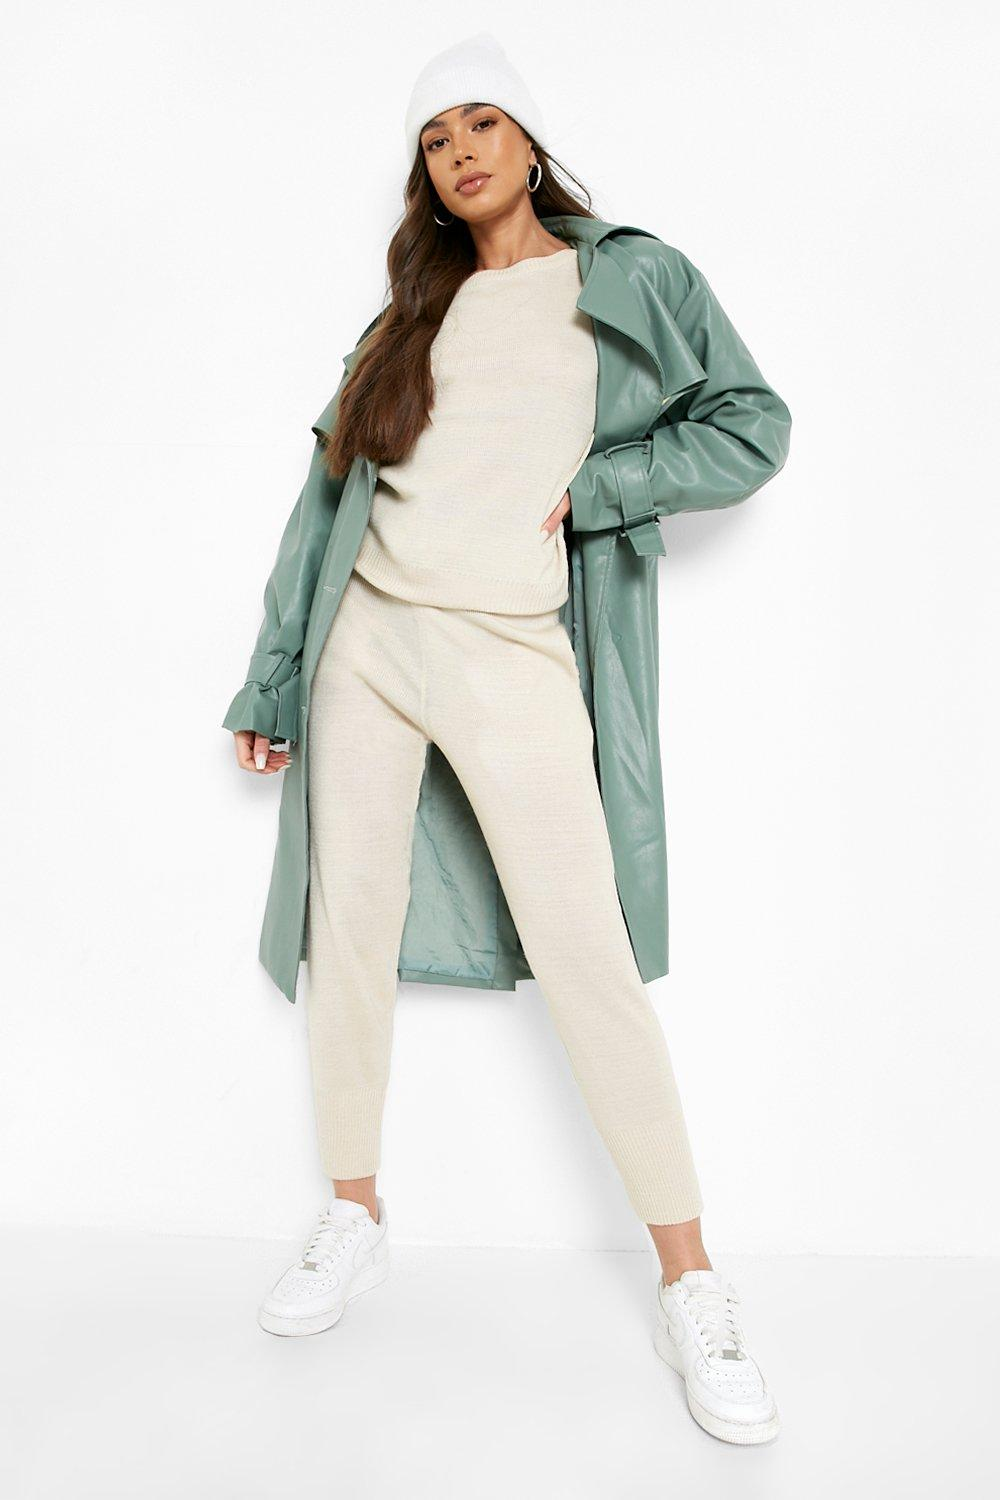 boohoo Womens Boutique Heavy Knitted Loungewear Set - Beige - S/M, Beige